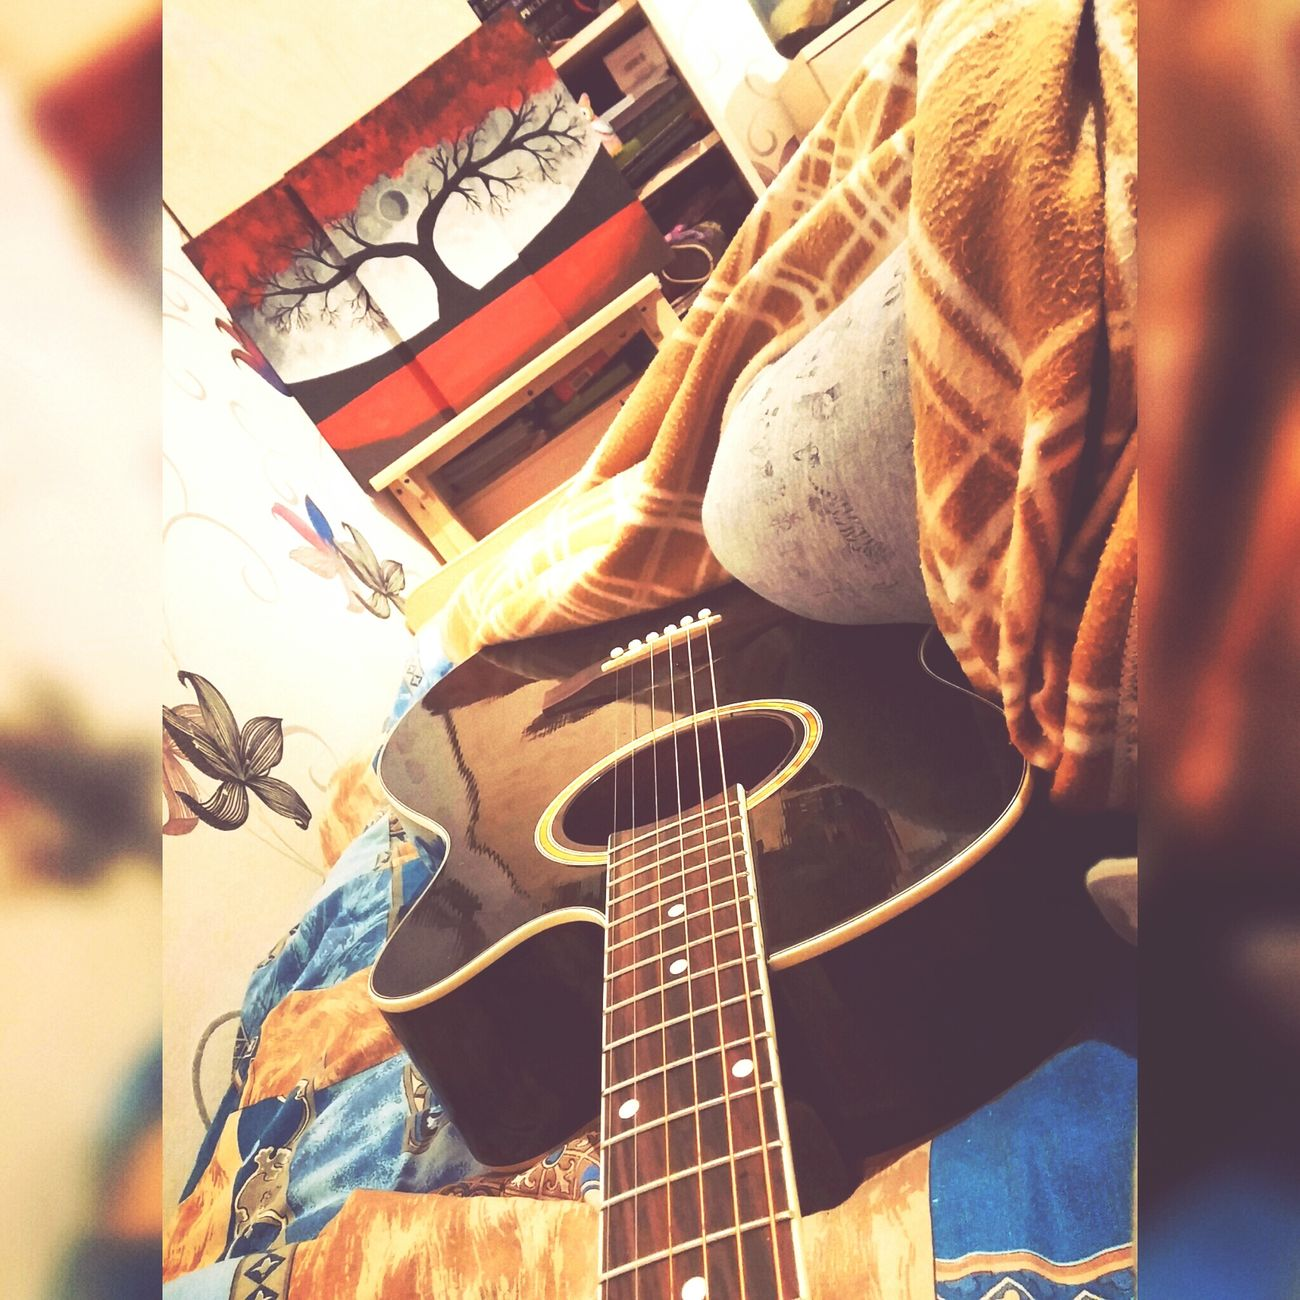 Gitar Lovehome Goodnight ✌✌✌